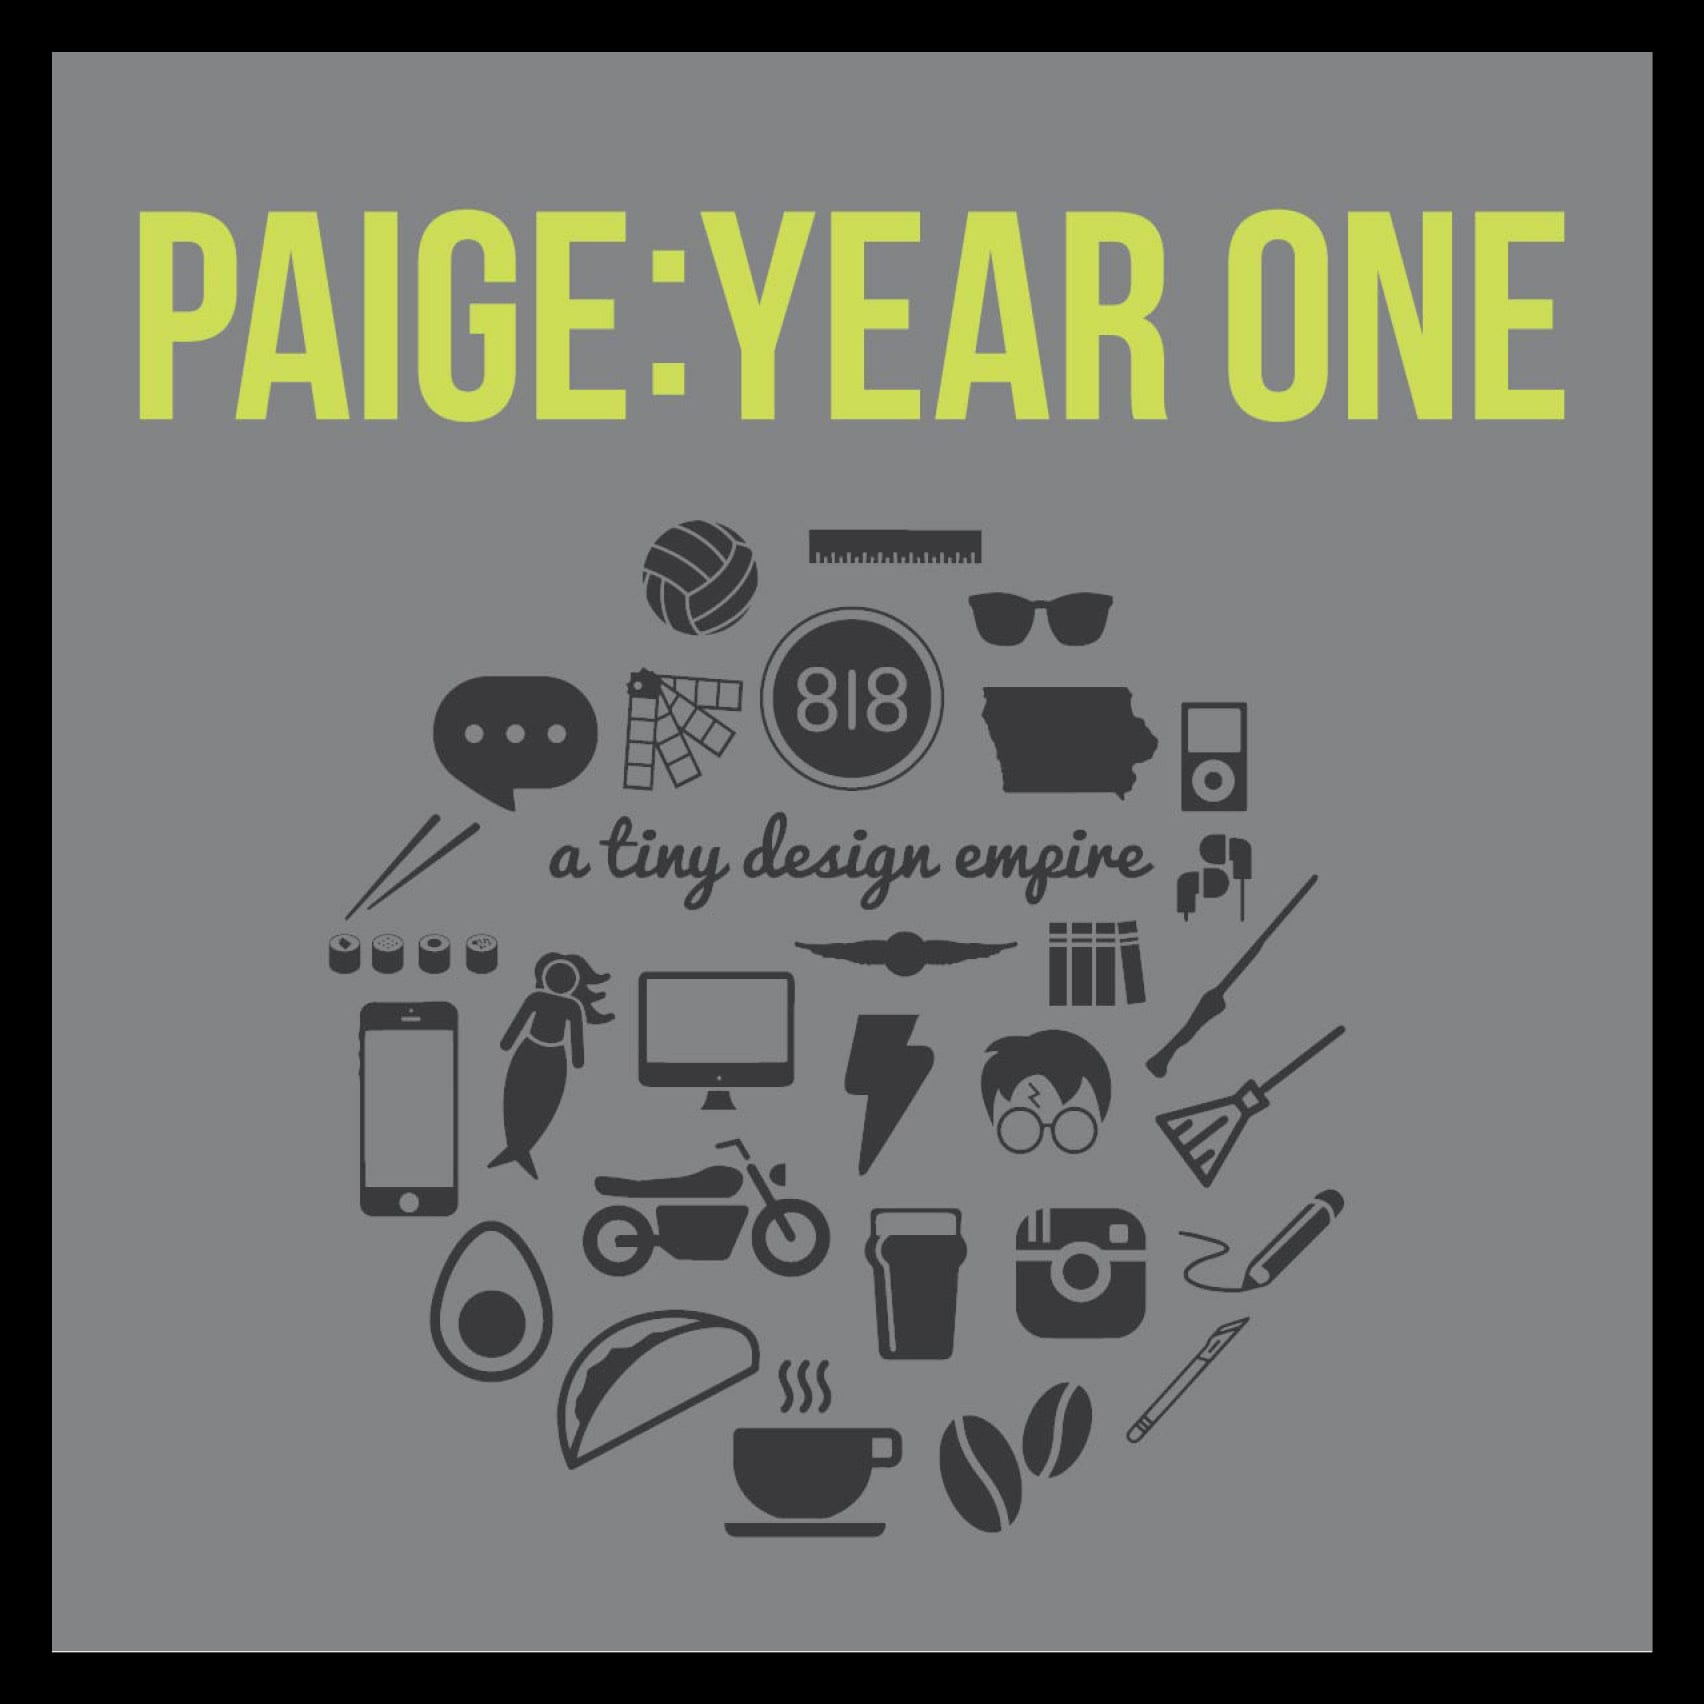 Paige: Year One